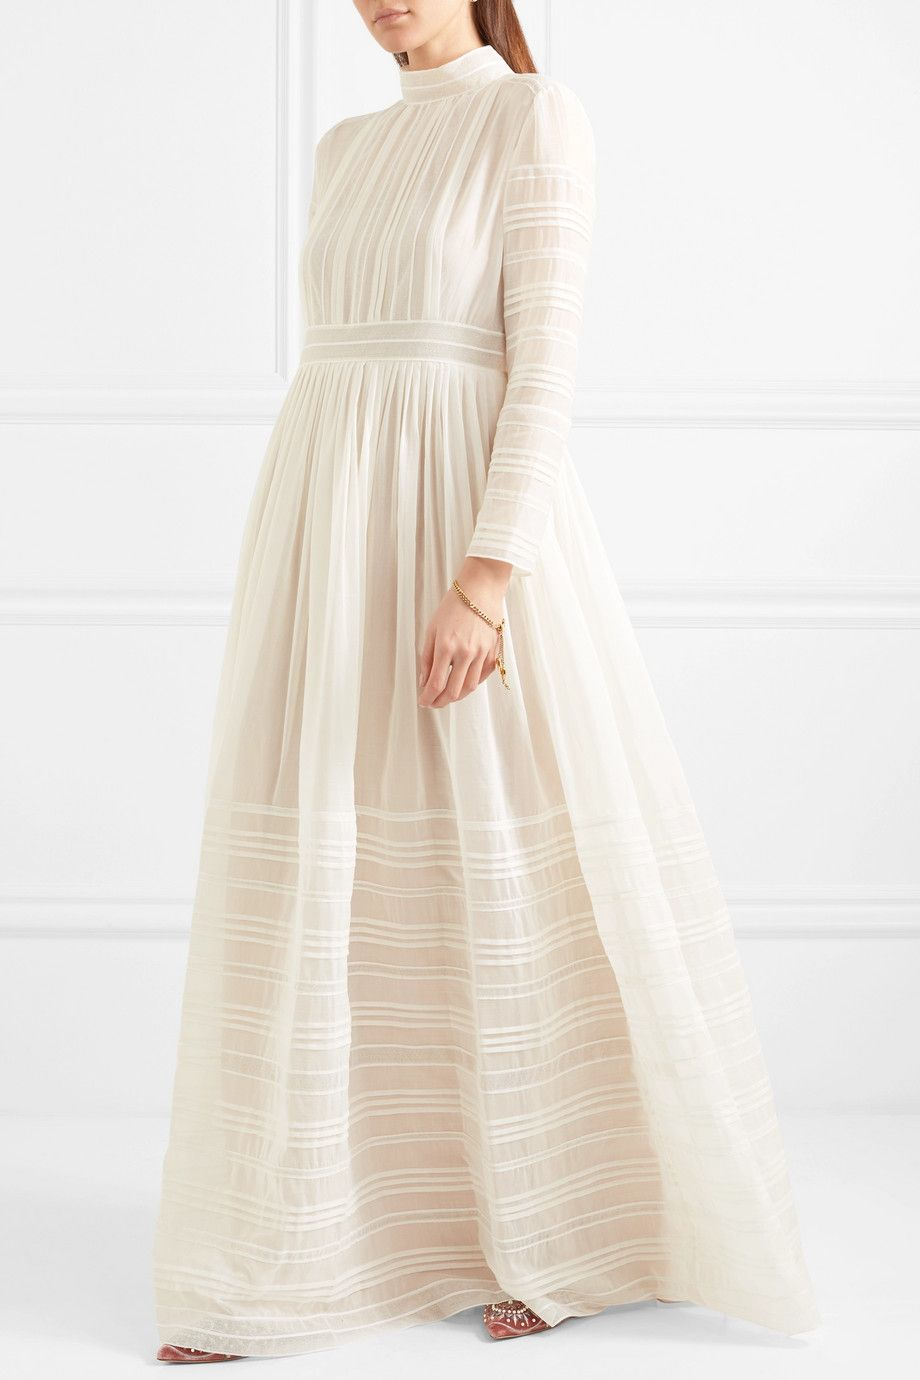 Tulle-trimmed Pintucked Cotton And Silk-blend Voile Gown - Ivory Valentino Discount Latest 2018 For Sale 9Jq8PA